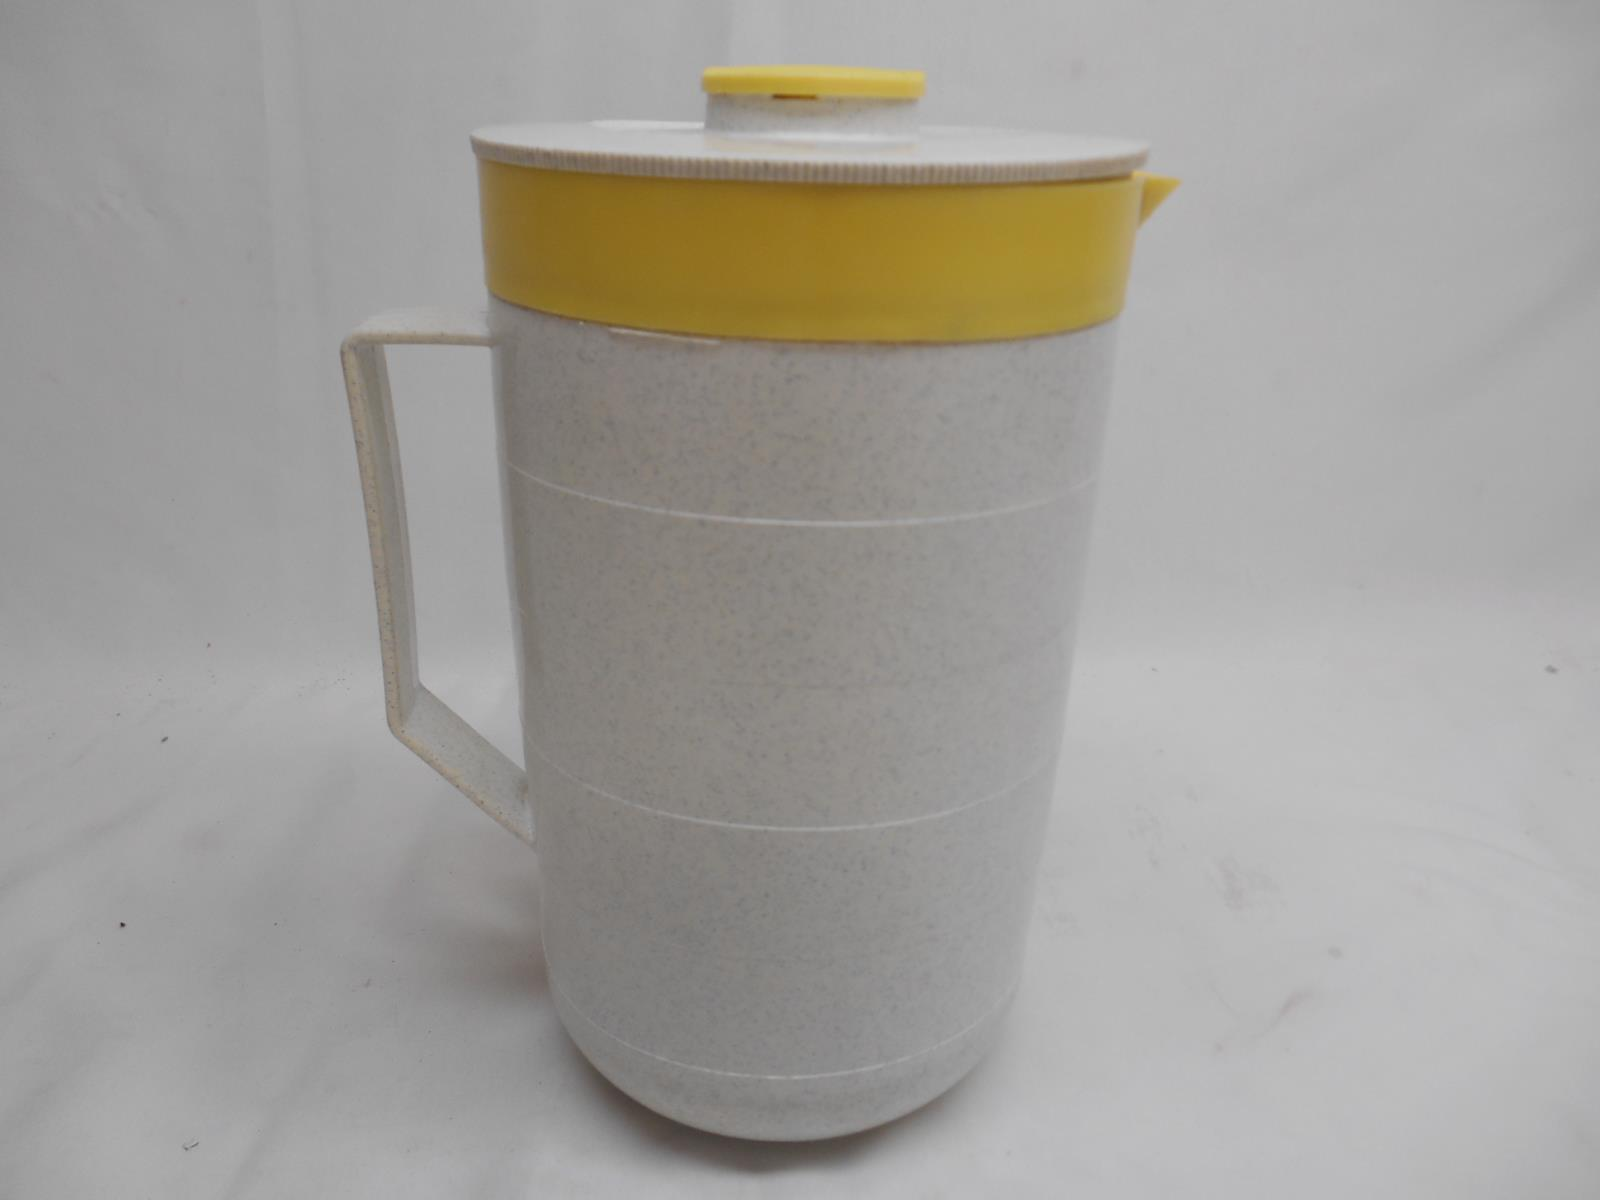 Old Vtg CORNISH THERM-O-PITCHER Yellow Gray Speckled Pitcher Mid-Century Retro